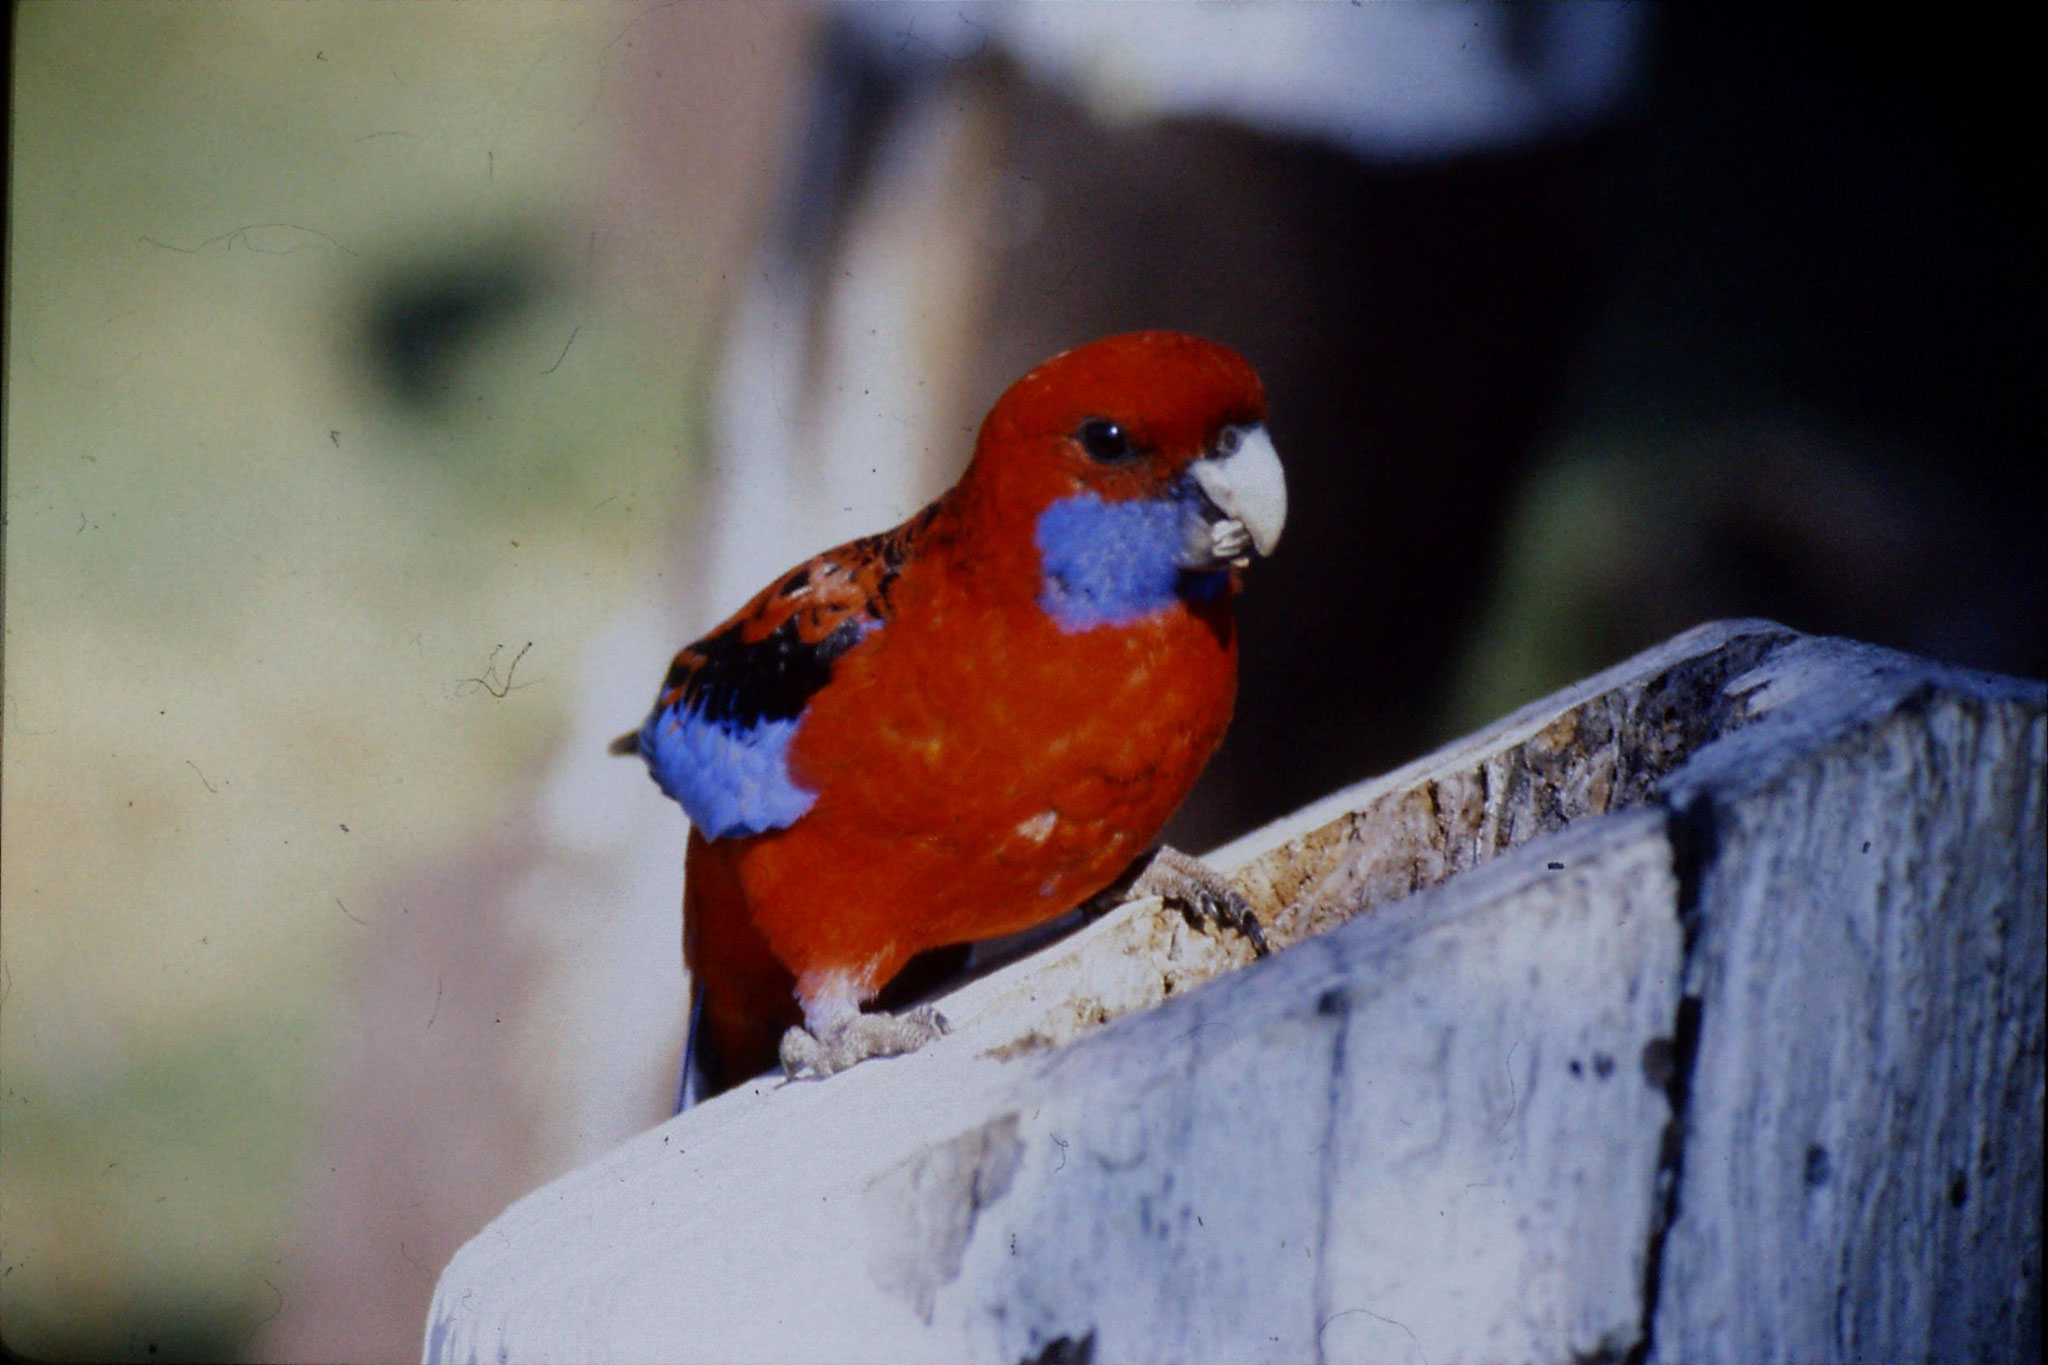 12/10/1990: 34: Lamington Nat. Pk., Crimson Rosella